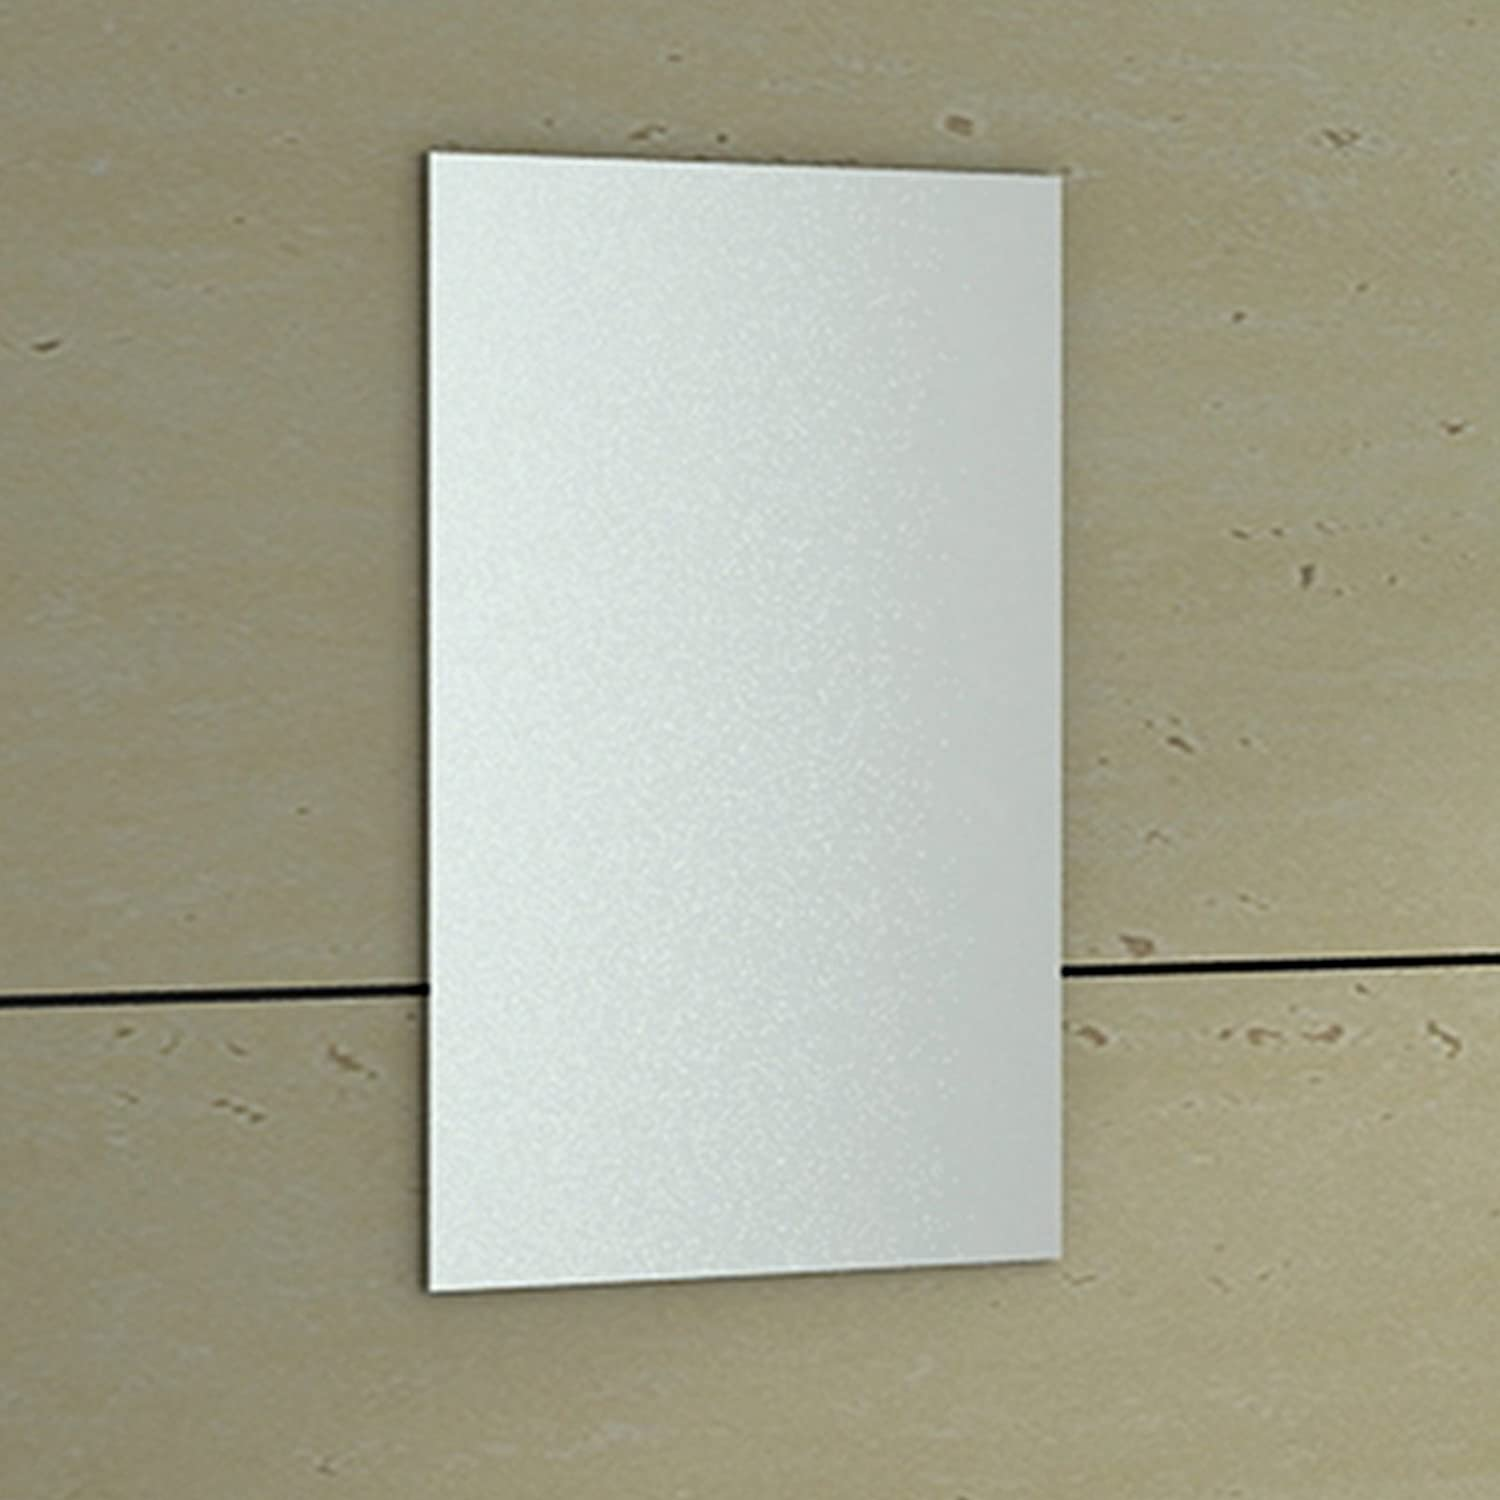 enki 400 x 600 mm rectangular bathroom wall mounted glass frameless mirror ebay. Black Bedroom Furniture Sets. Home Design Ideas